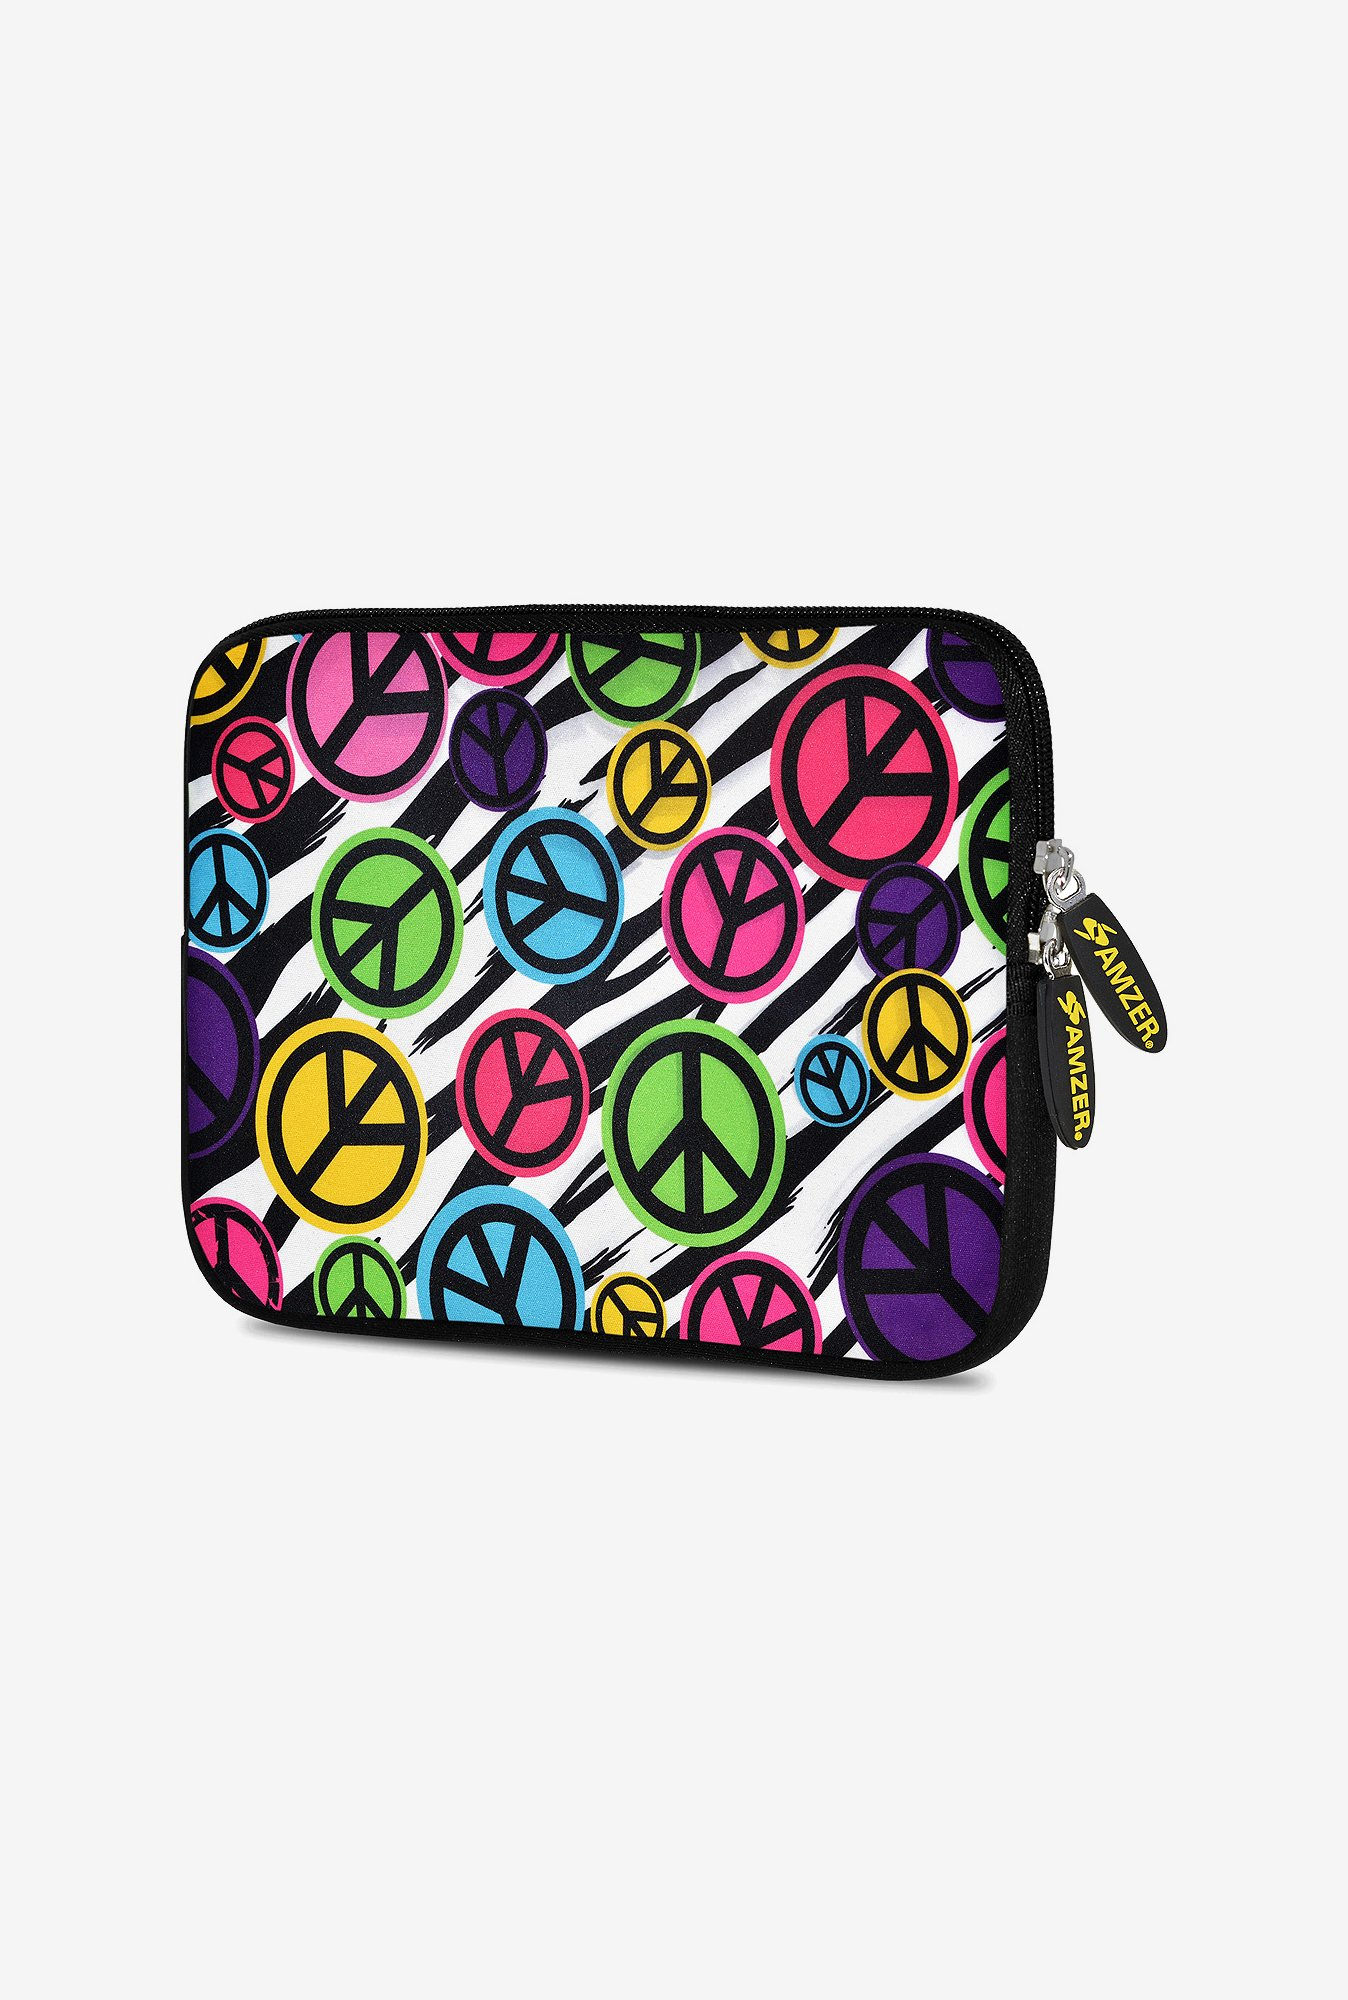 Amzer 7.75 Inch Neoprene Sleeve - Peace United